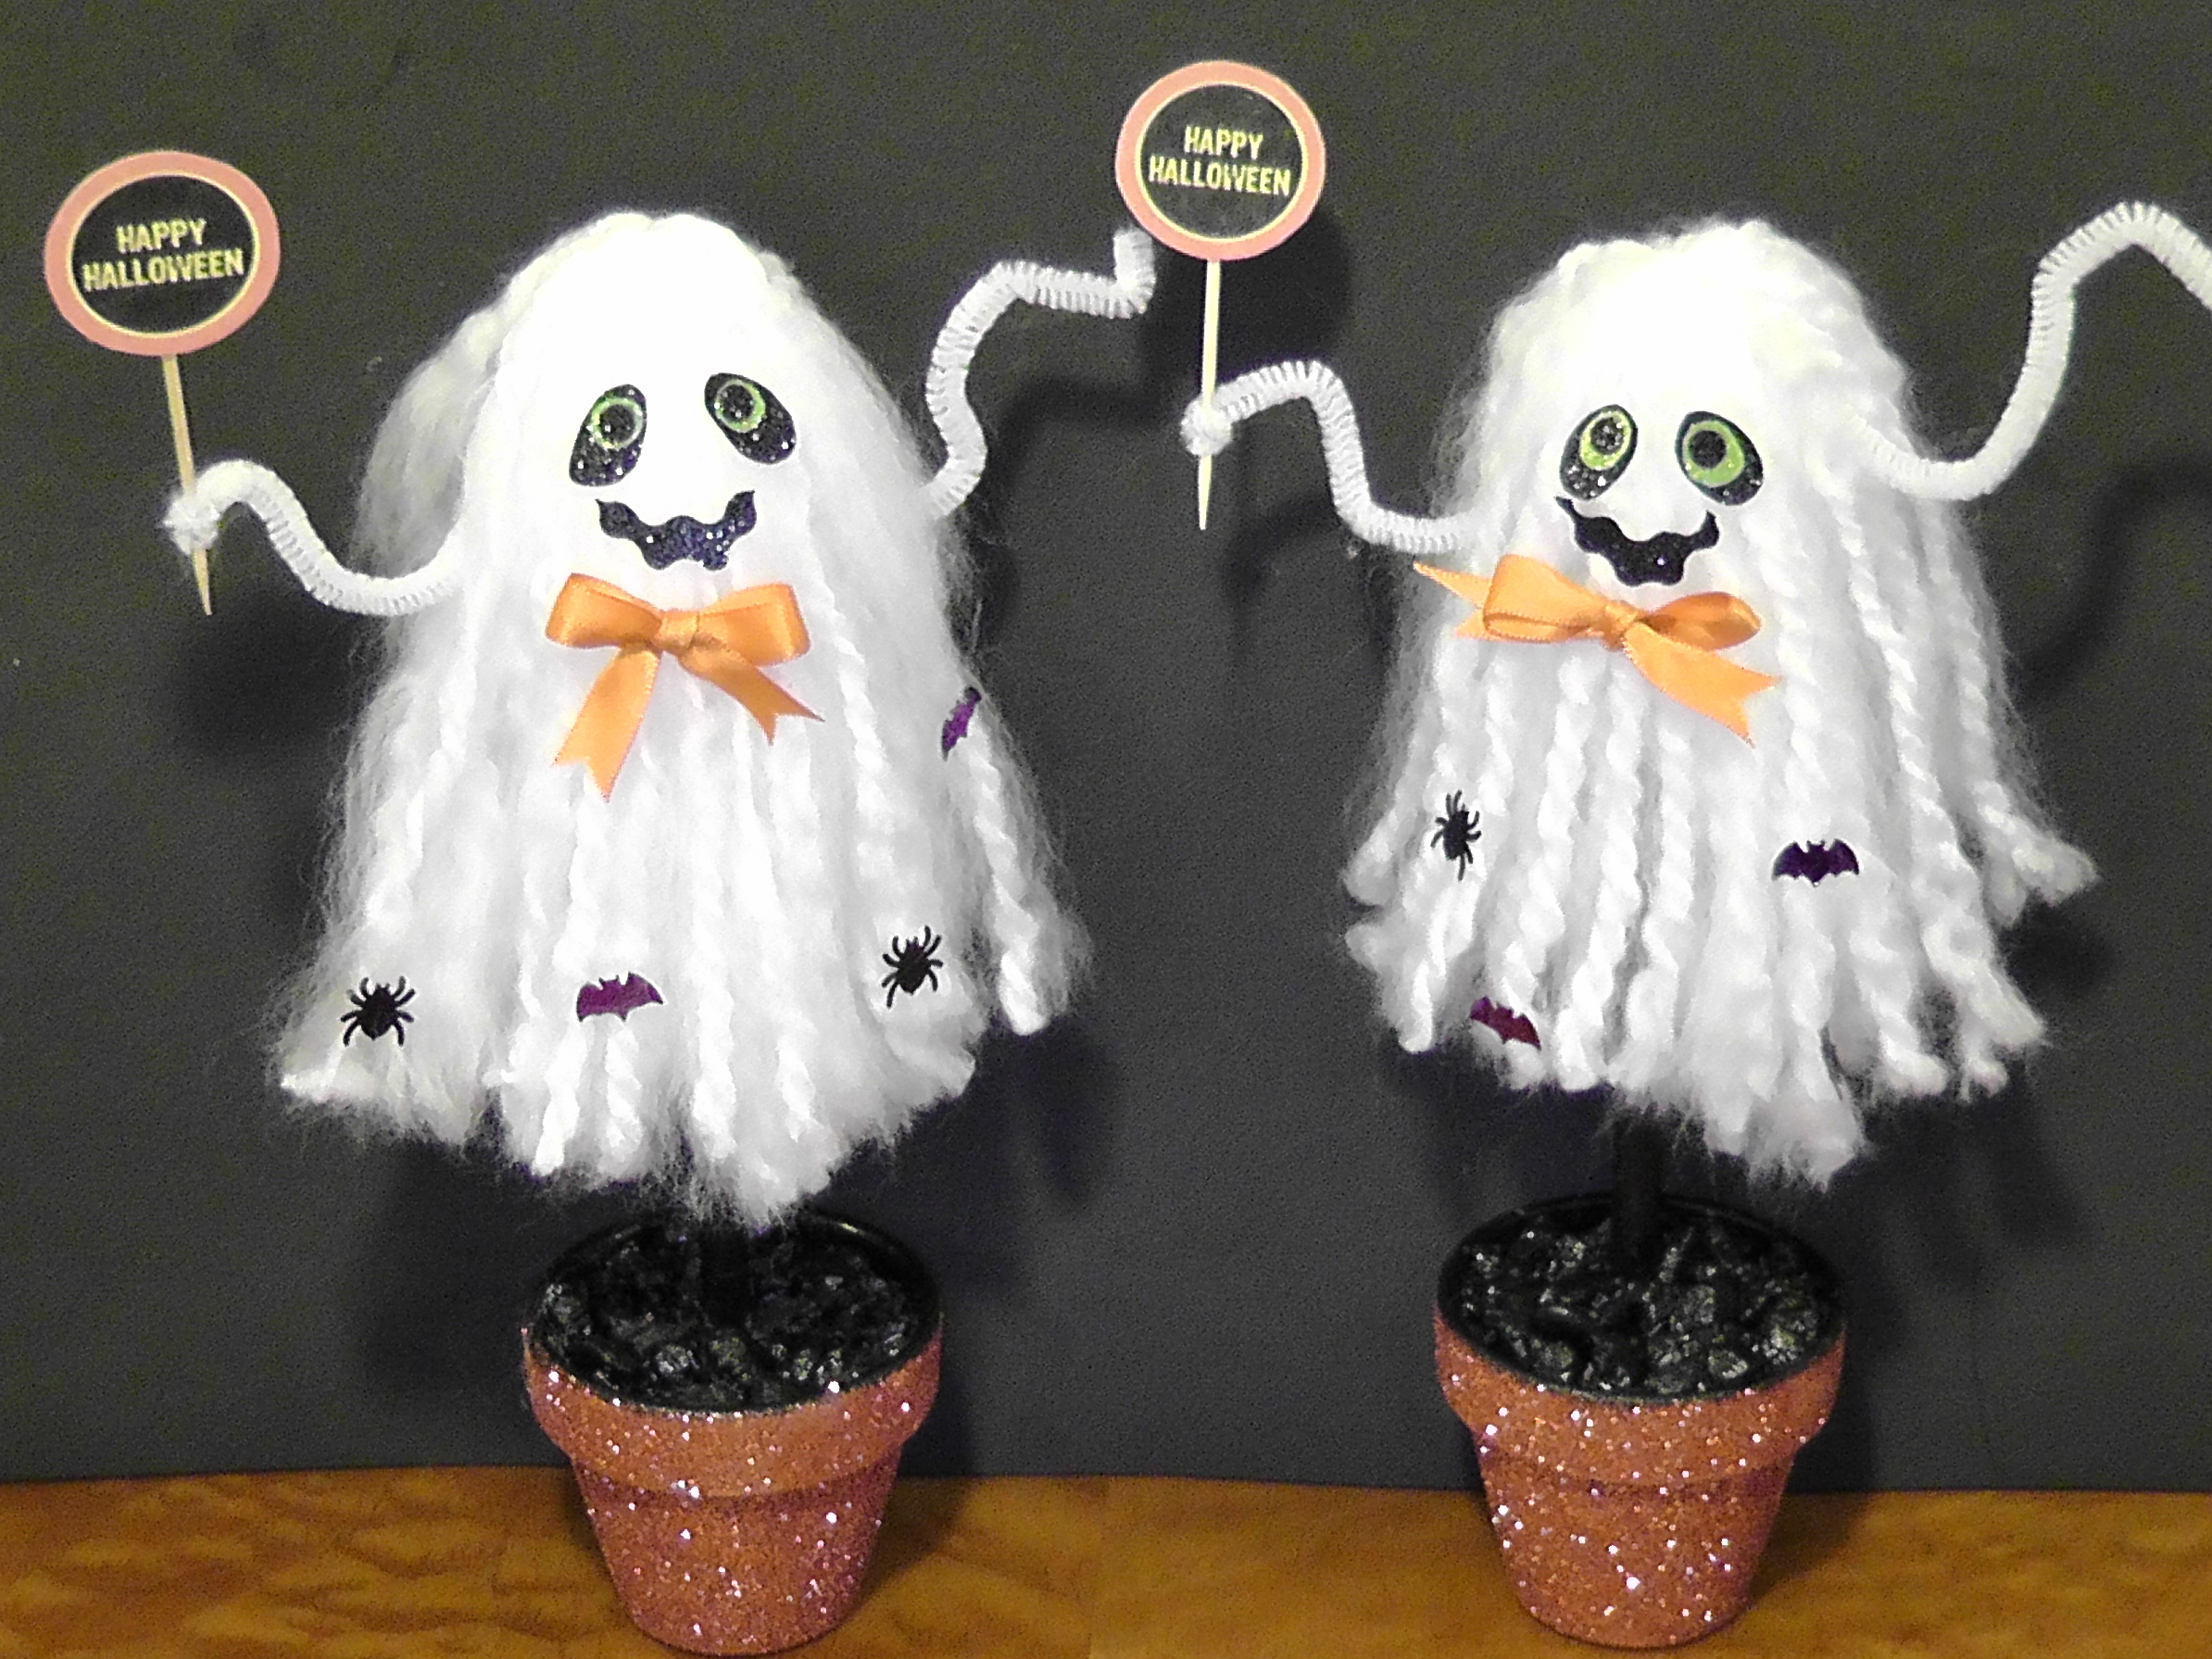 New Project: Scrunchy Ghosts